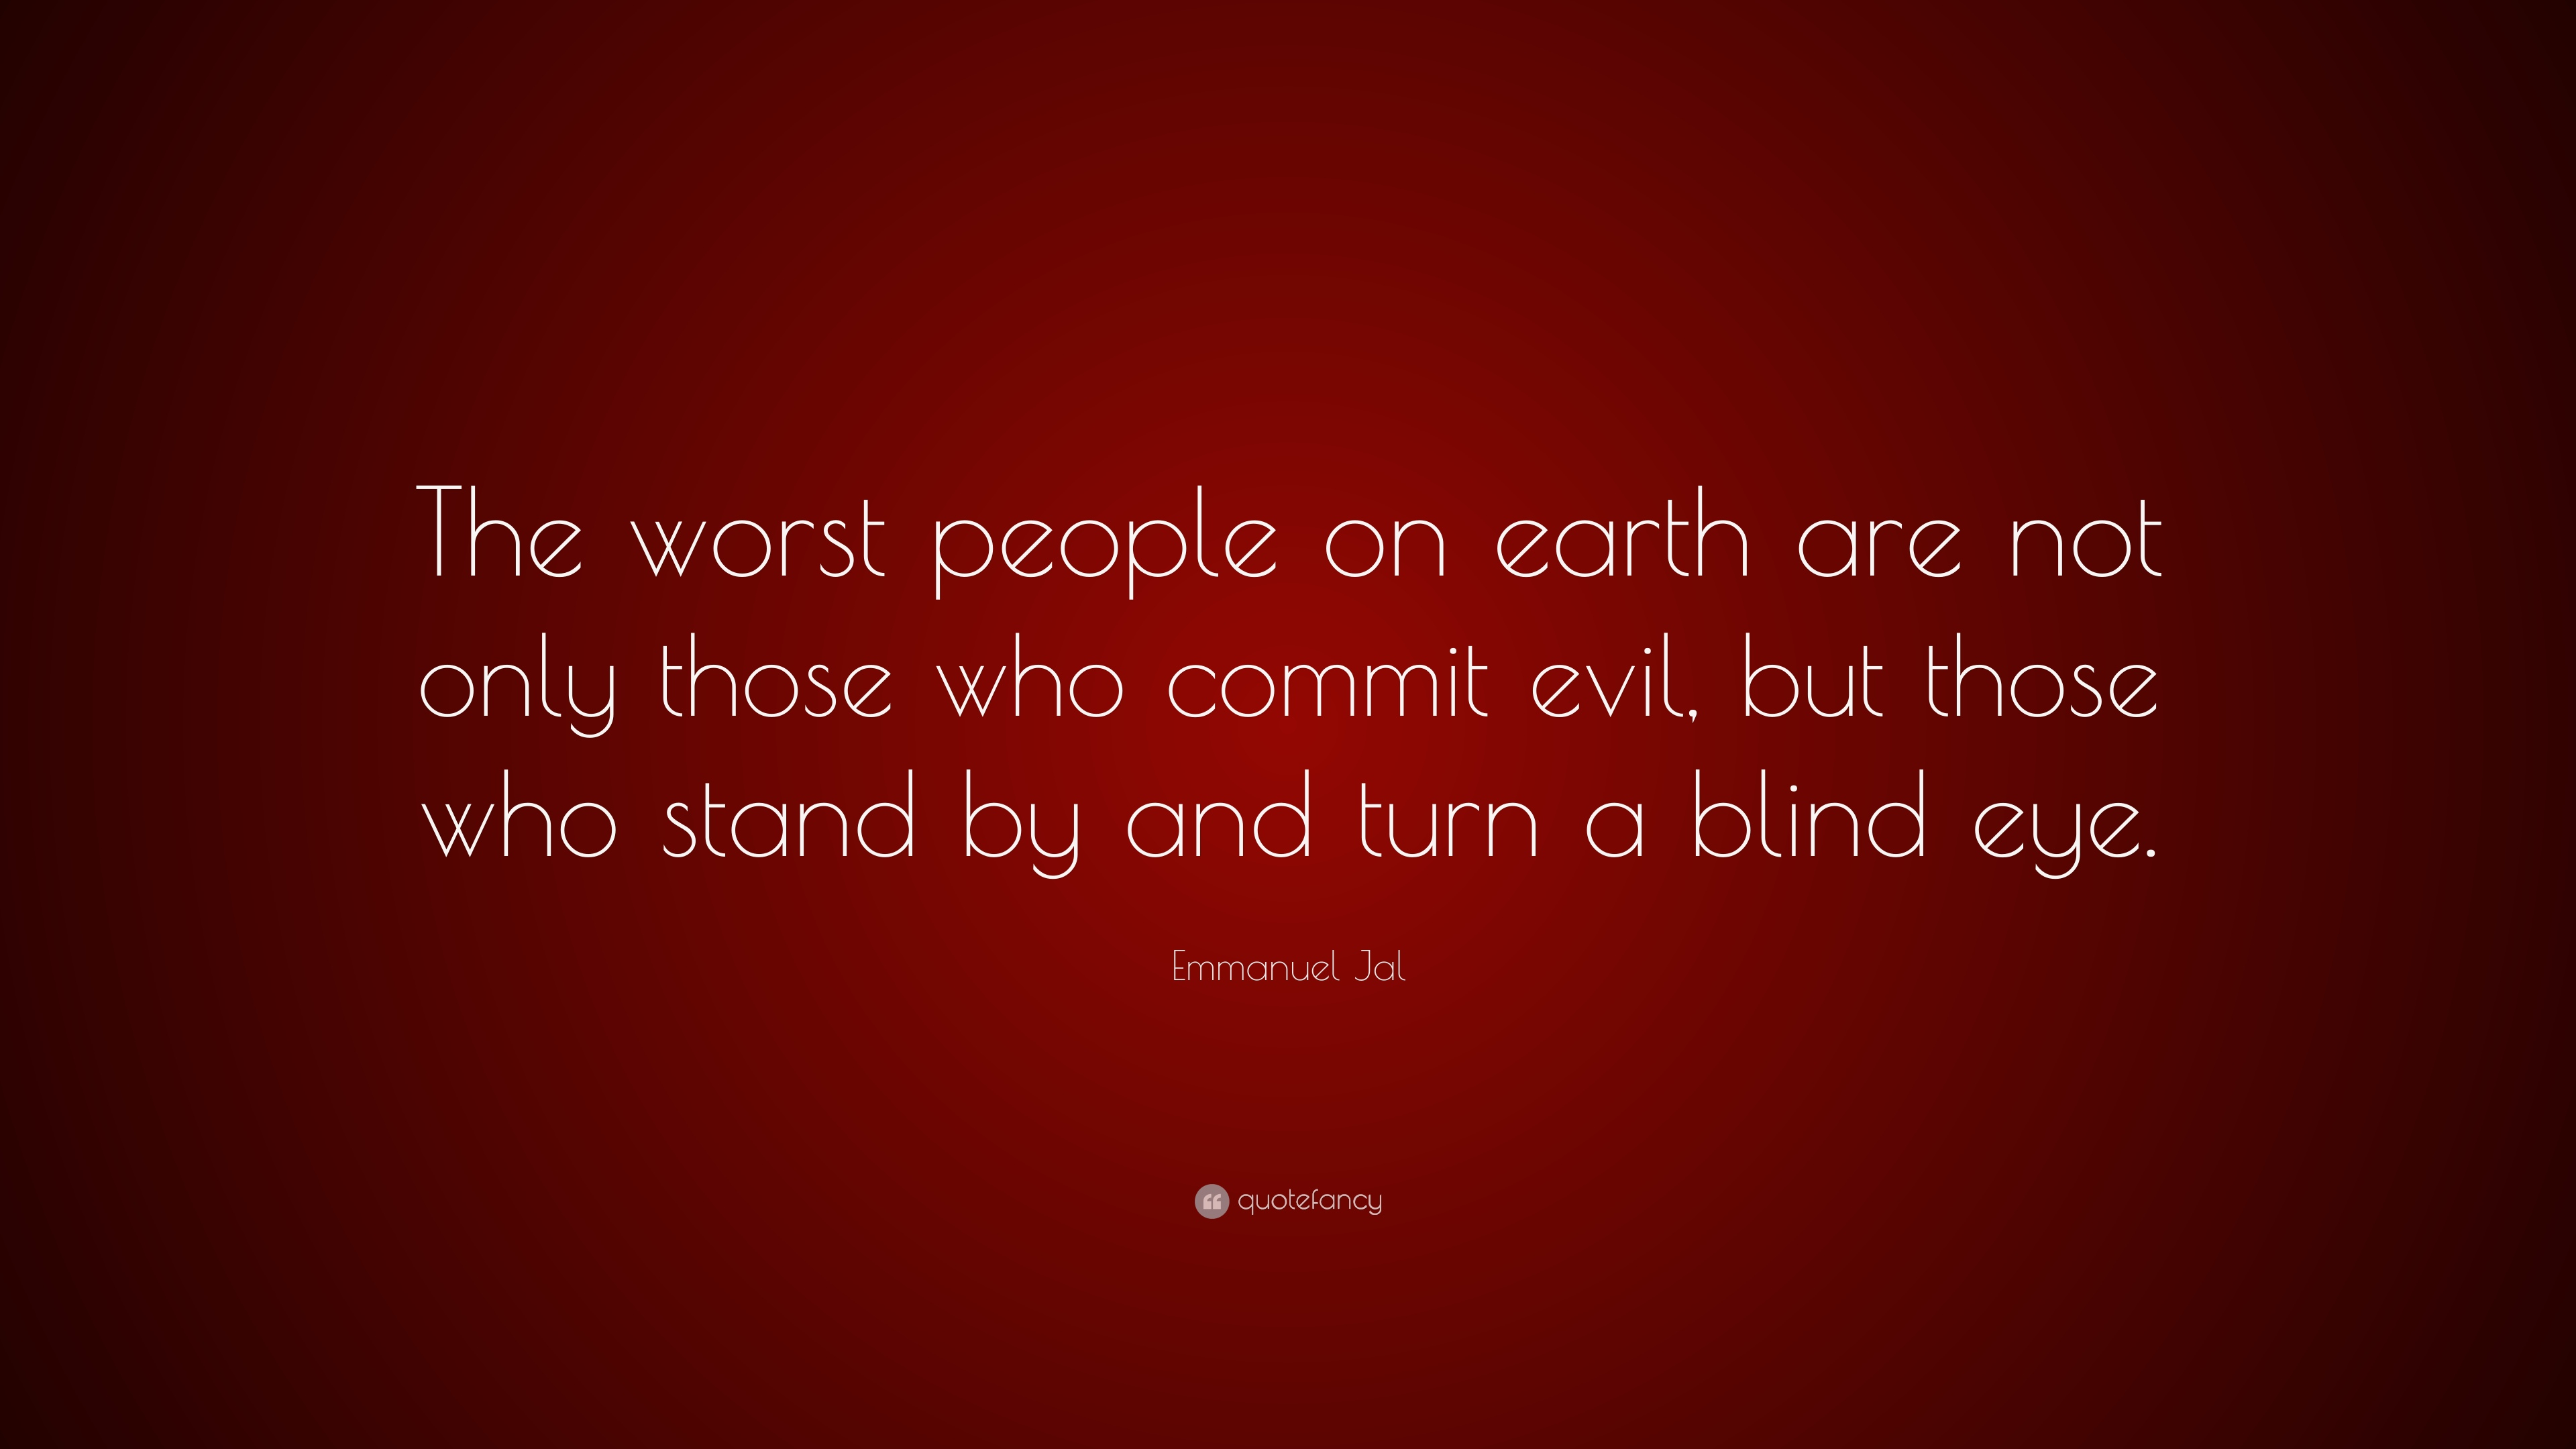 Emmanuel Jal Quote The Worst People On Earth Are Not Only Those Who Commit Evil But Those Who Stand By And Turn A Blind Eye 10 Wallpapers Quotefancy